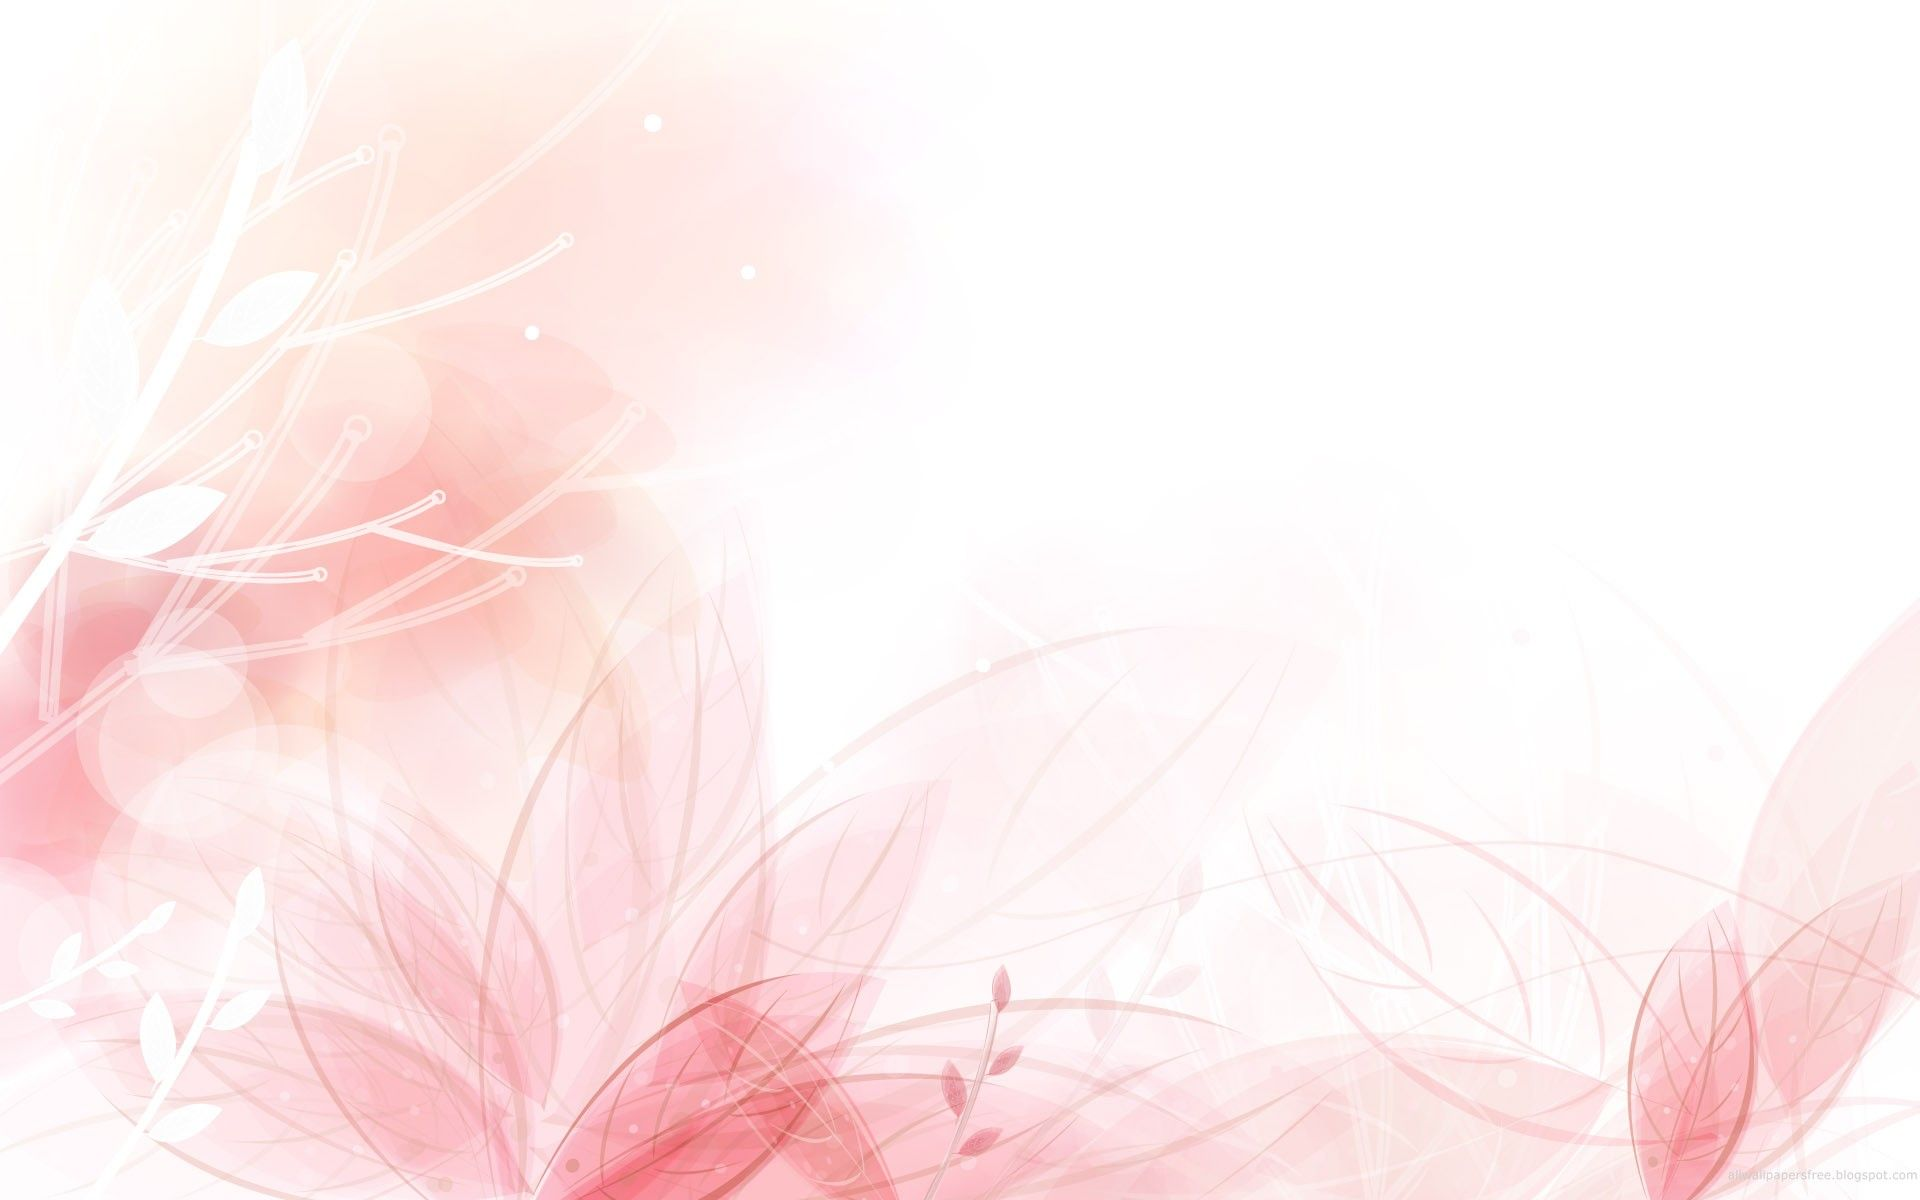 Pink Light Flower Pattern Image Hd Background Wallpaper 26 HD Wallpapers